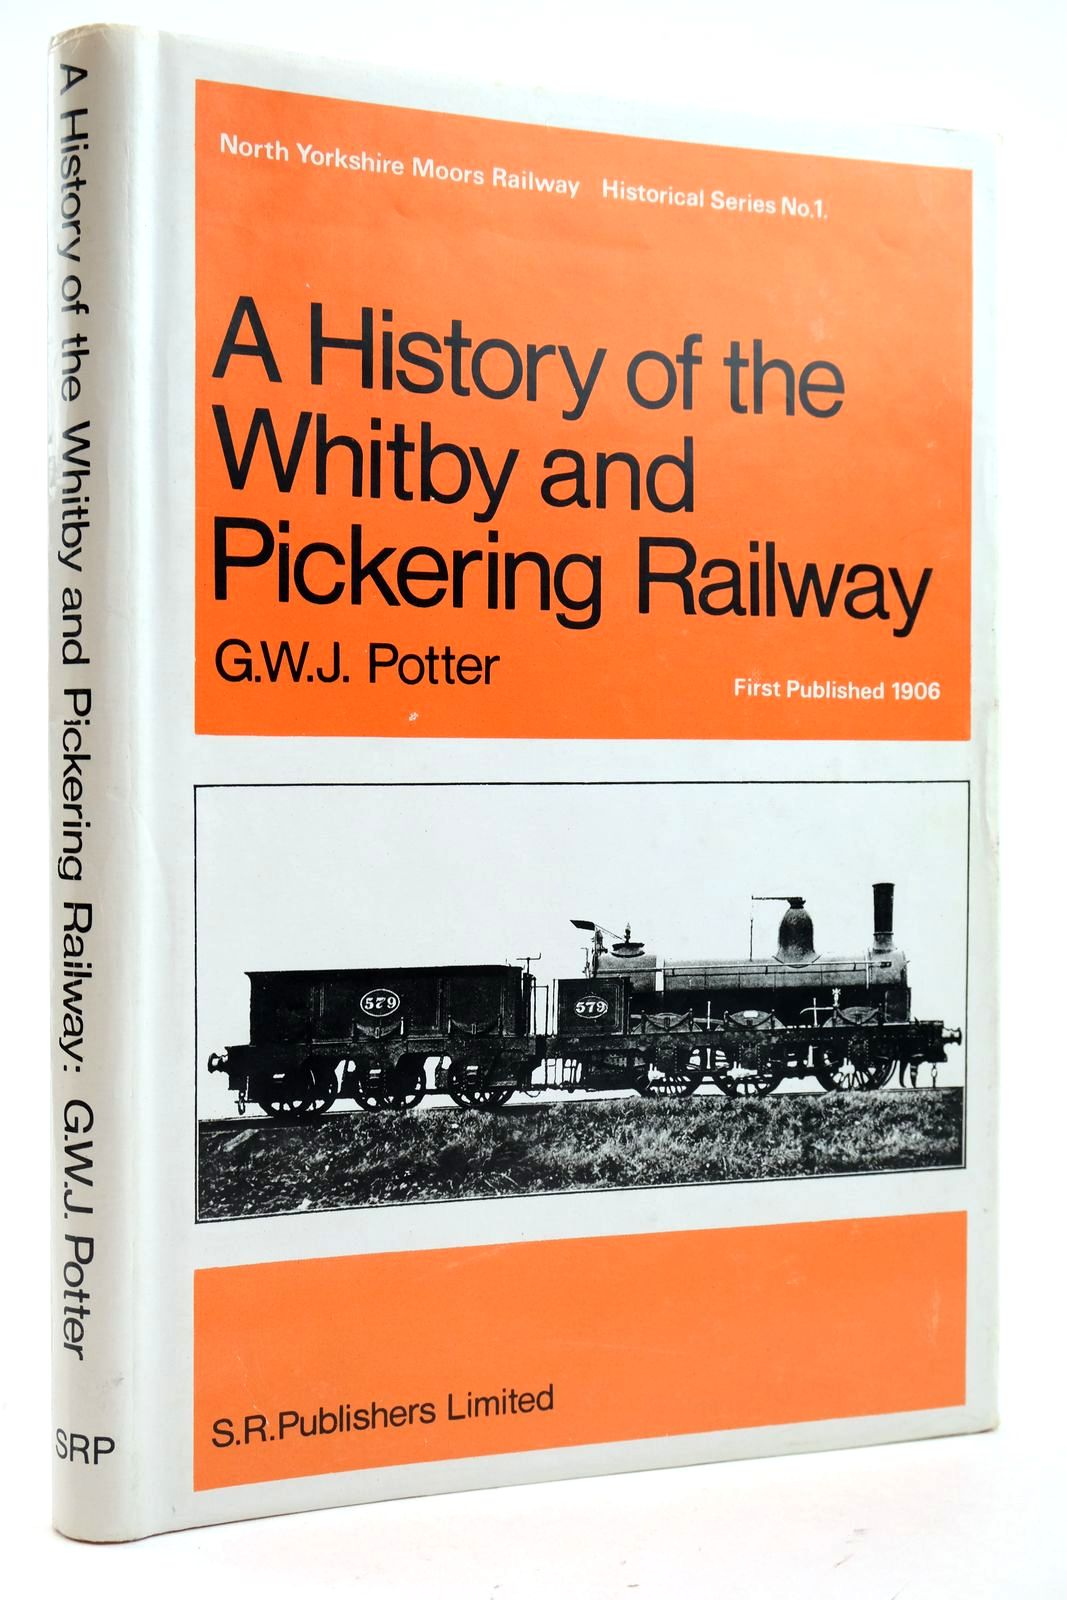 Photo of A HISTORY OF THE WHITBY AND PICKERING RAILWAY written by Potter, G.W.J. Hoole, Ken published by S.R. Publishers Ltd. (STOCK CODE: 2133061)  for sale by Stella & Rose's Books